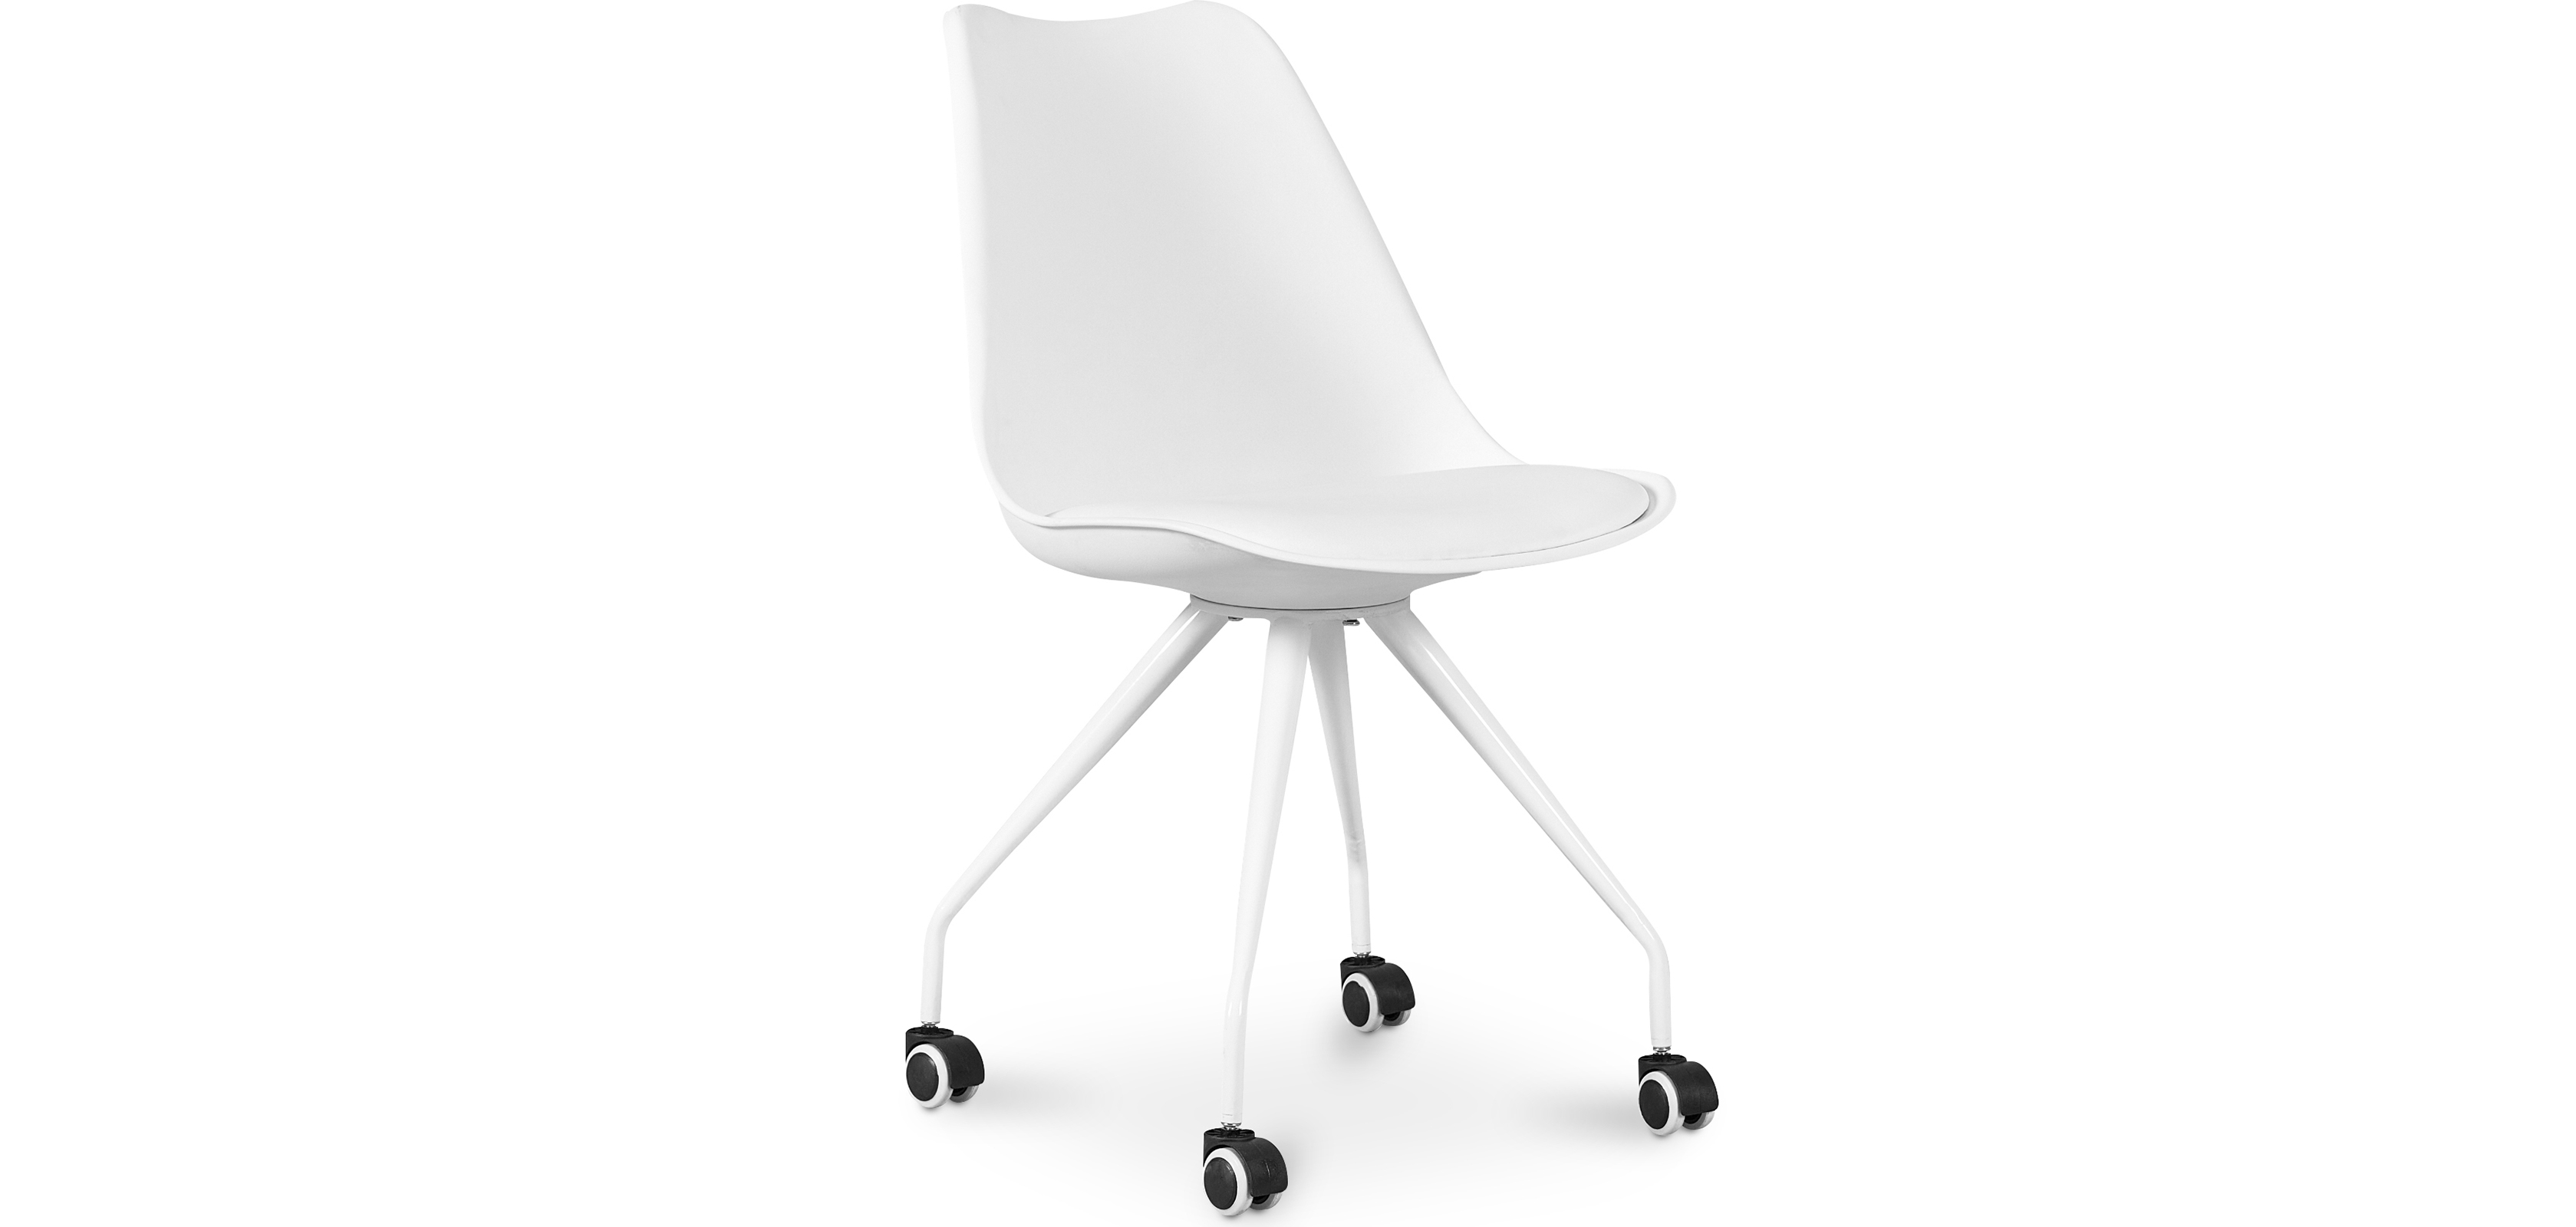 Buy Scandinavian Office chair with Wheels  - Dana White 59904 - in the UK